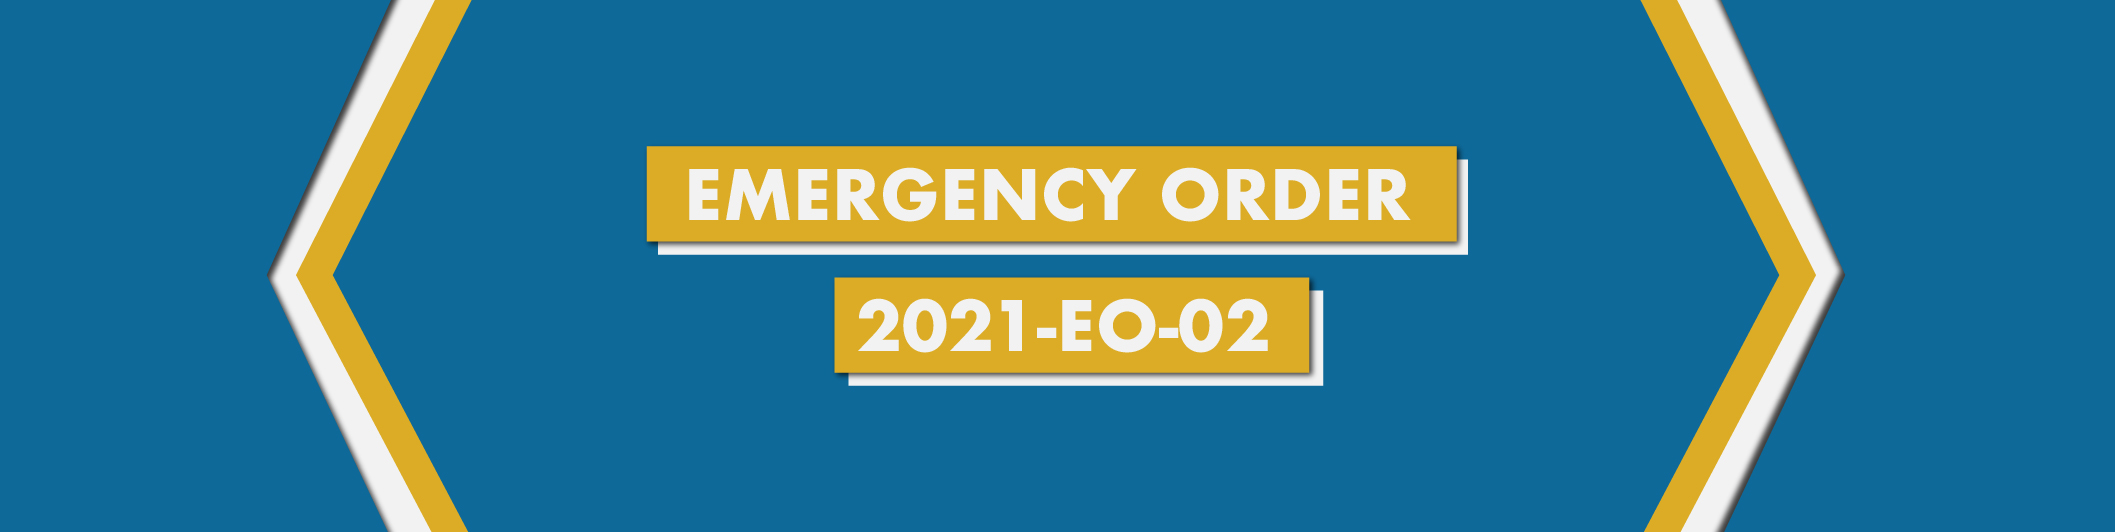 Emergency Order (EO) 2021-EO-02